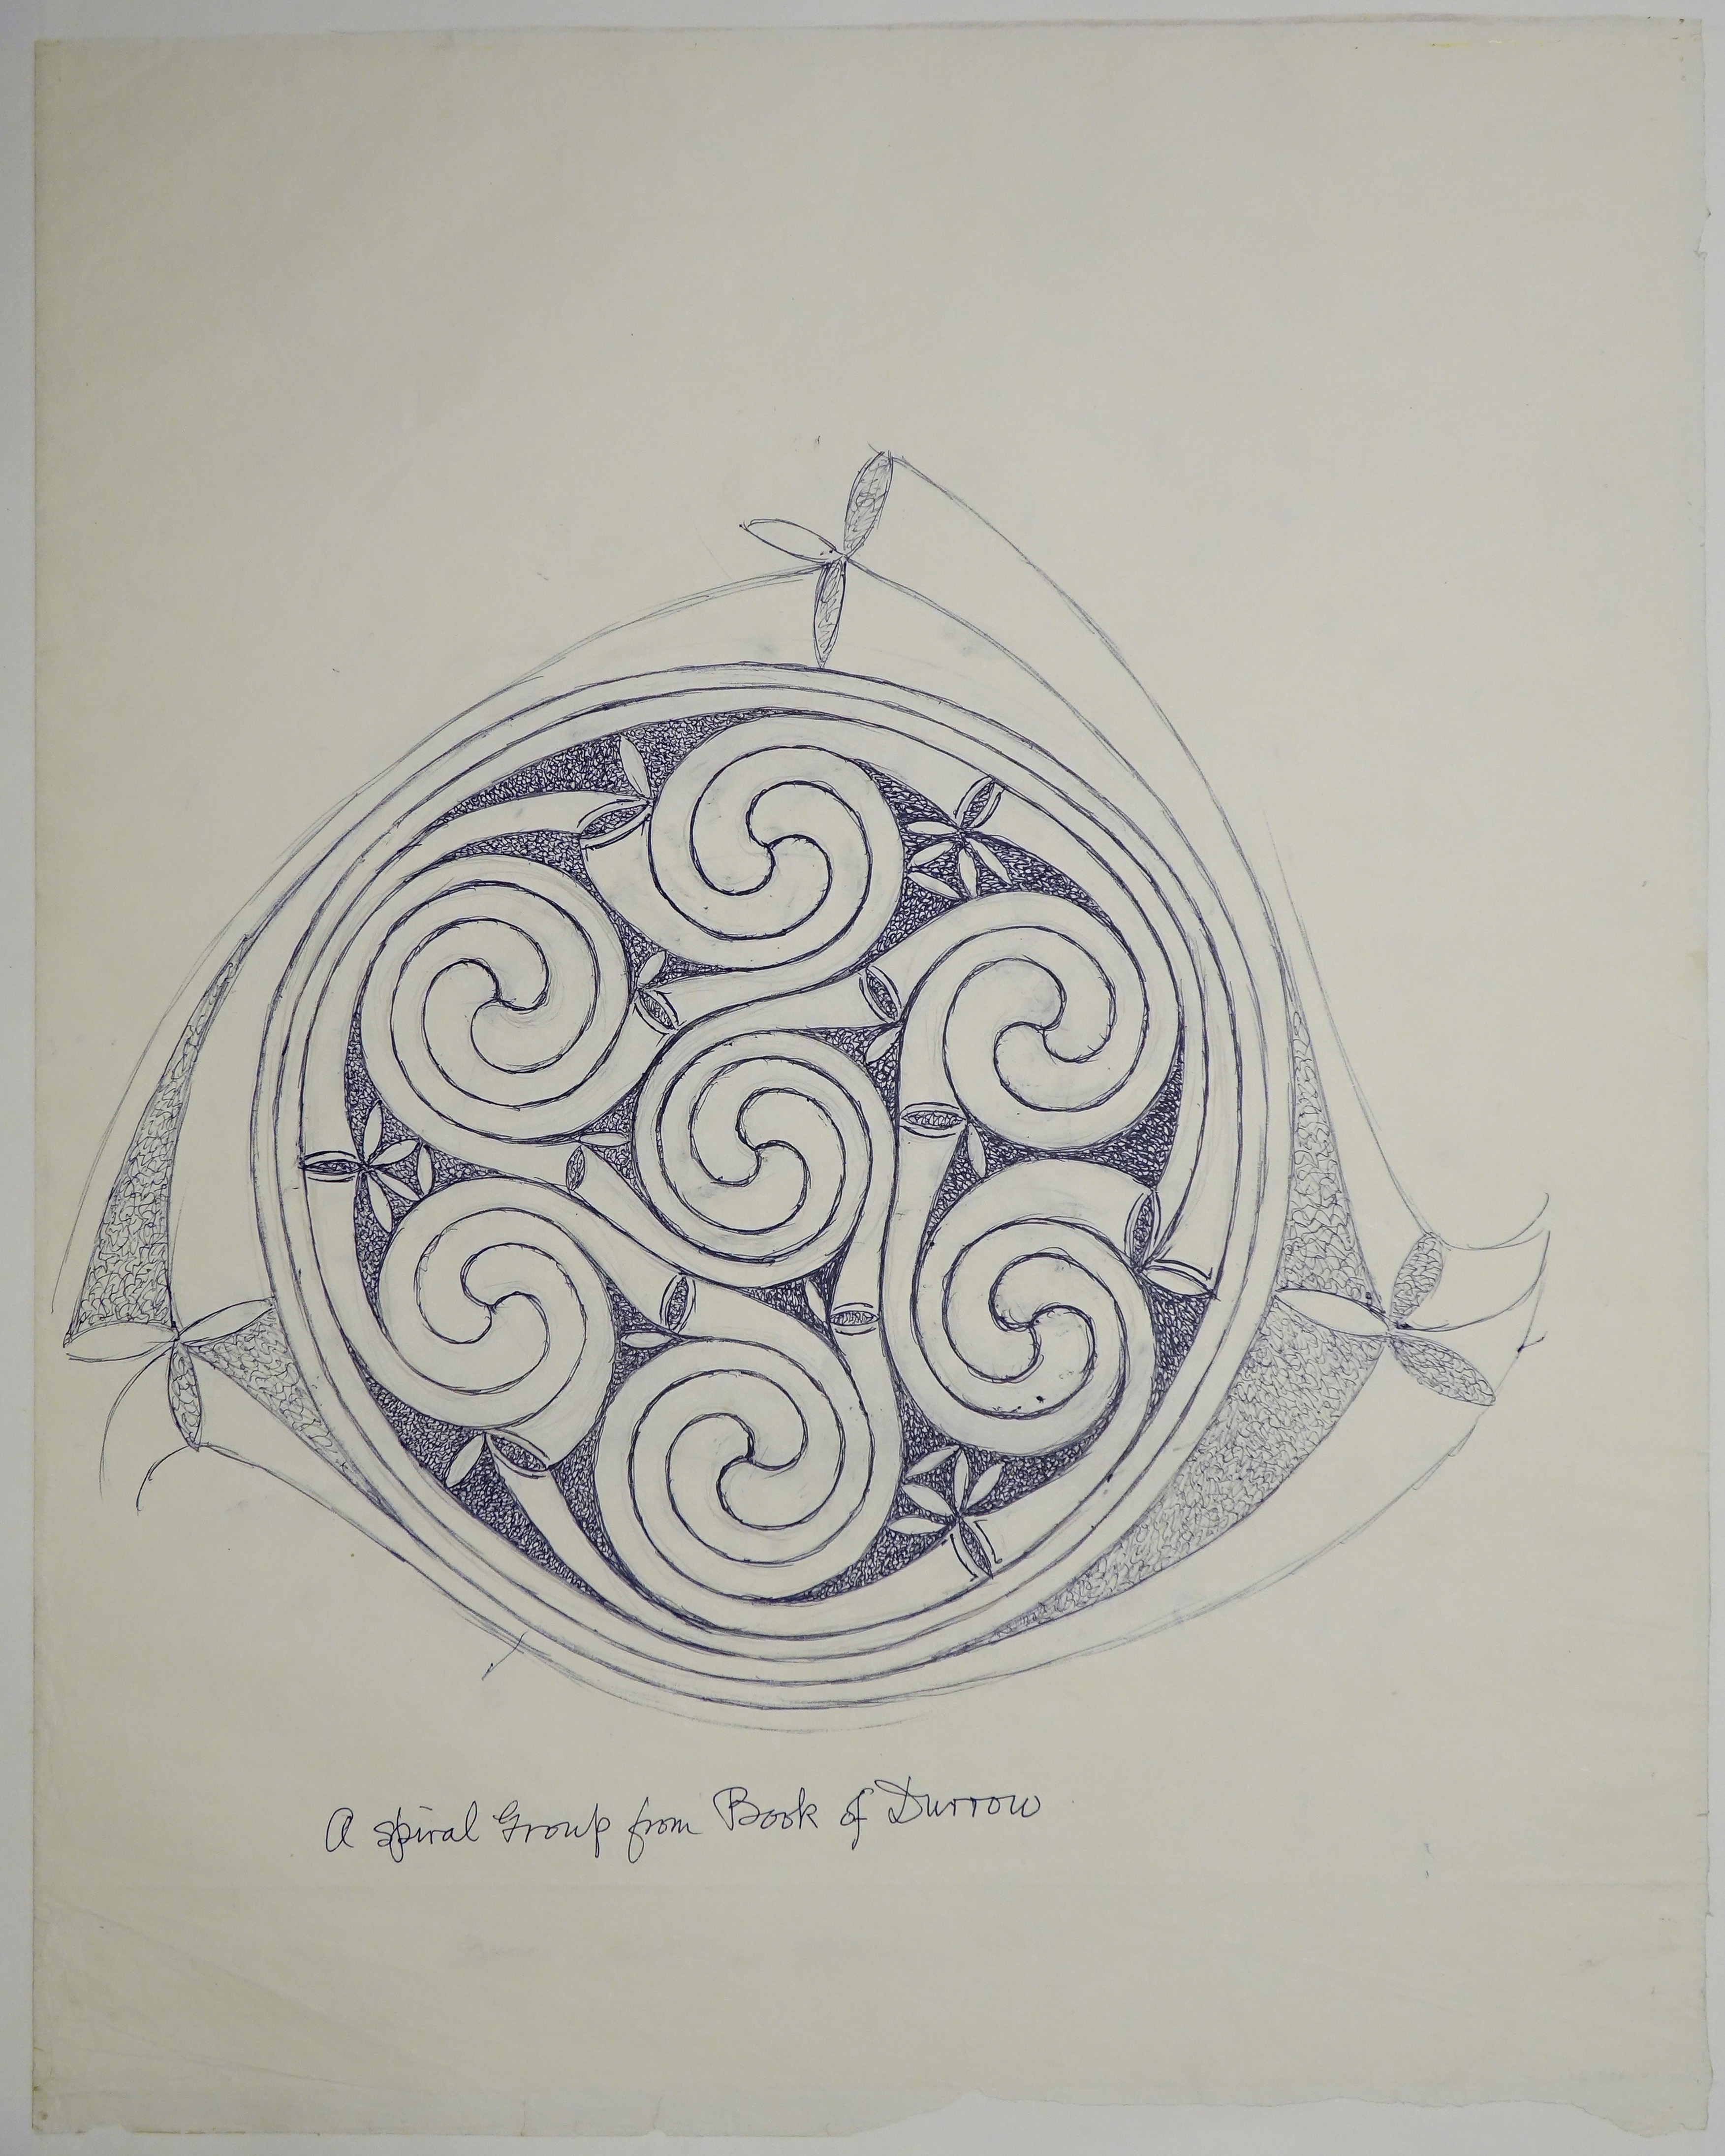 George Bain Drawing - A Spiral Group from Book of Durrow. · Open ...